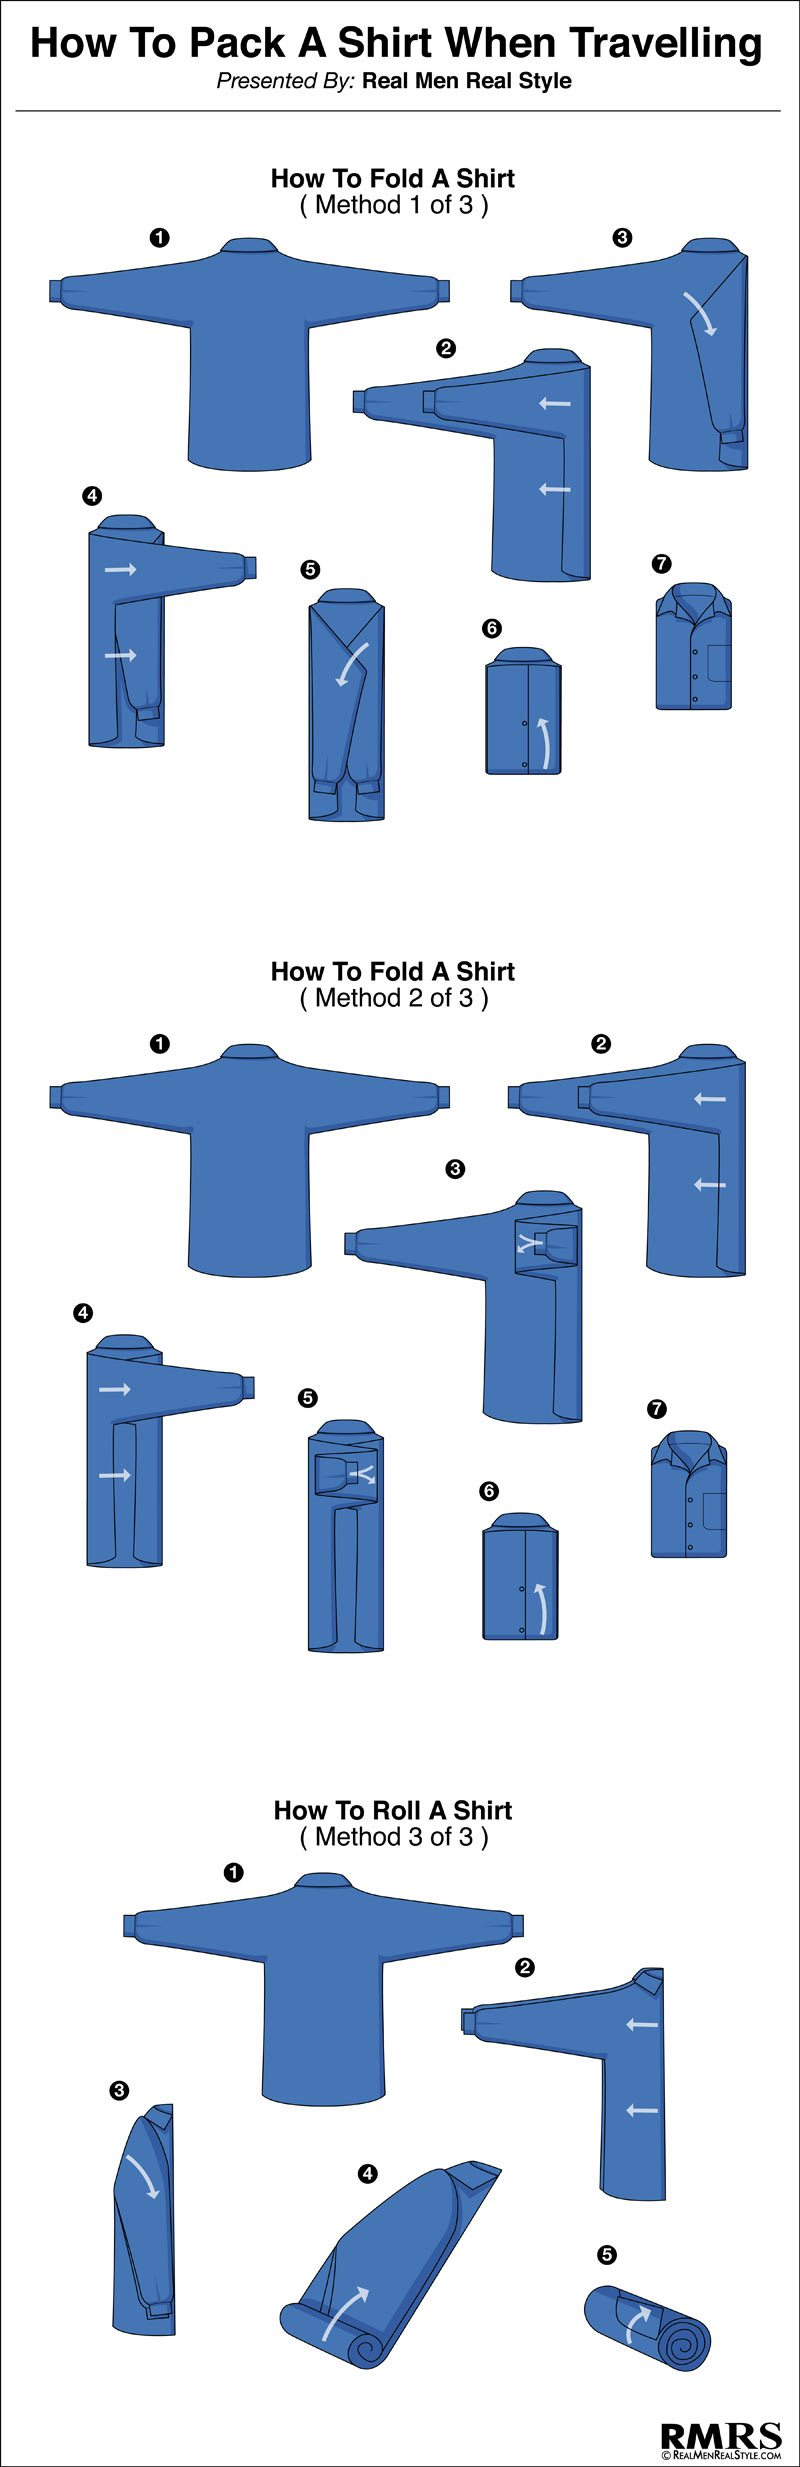 3-Ways-To-Fold-A-Shirt-Infographic-800